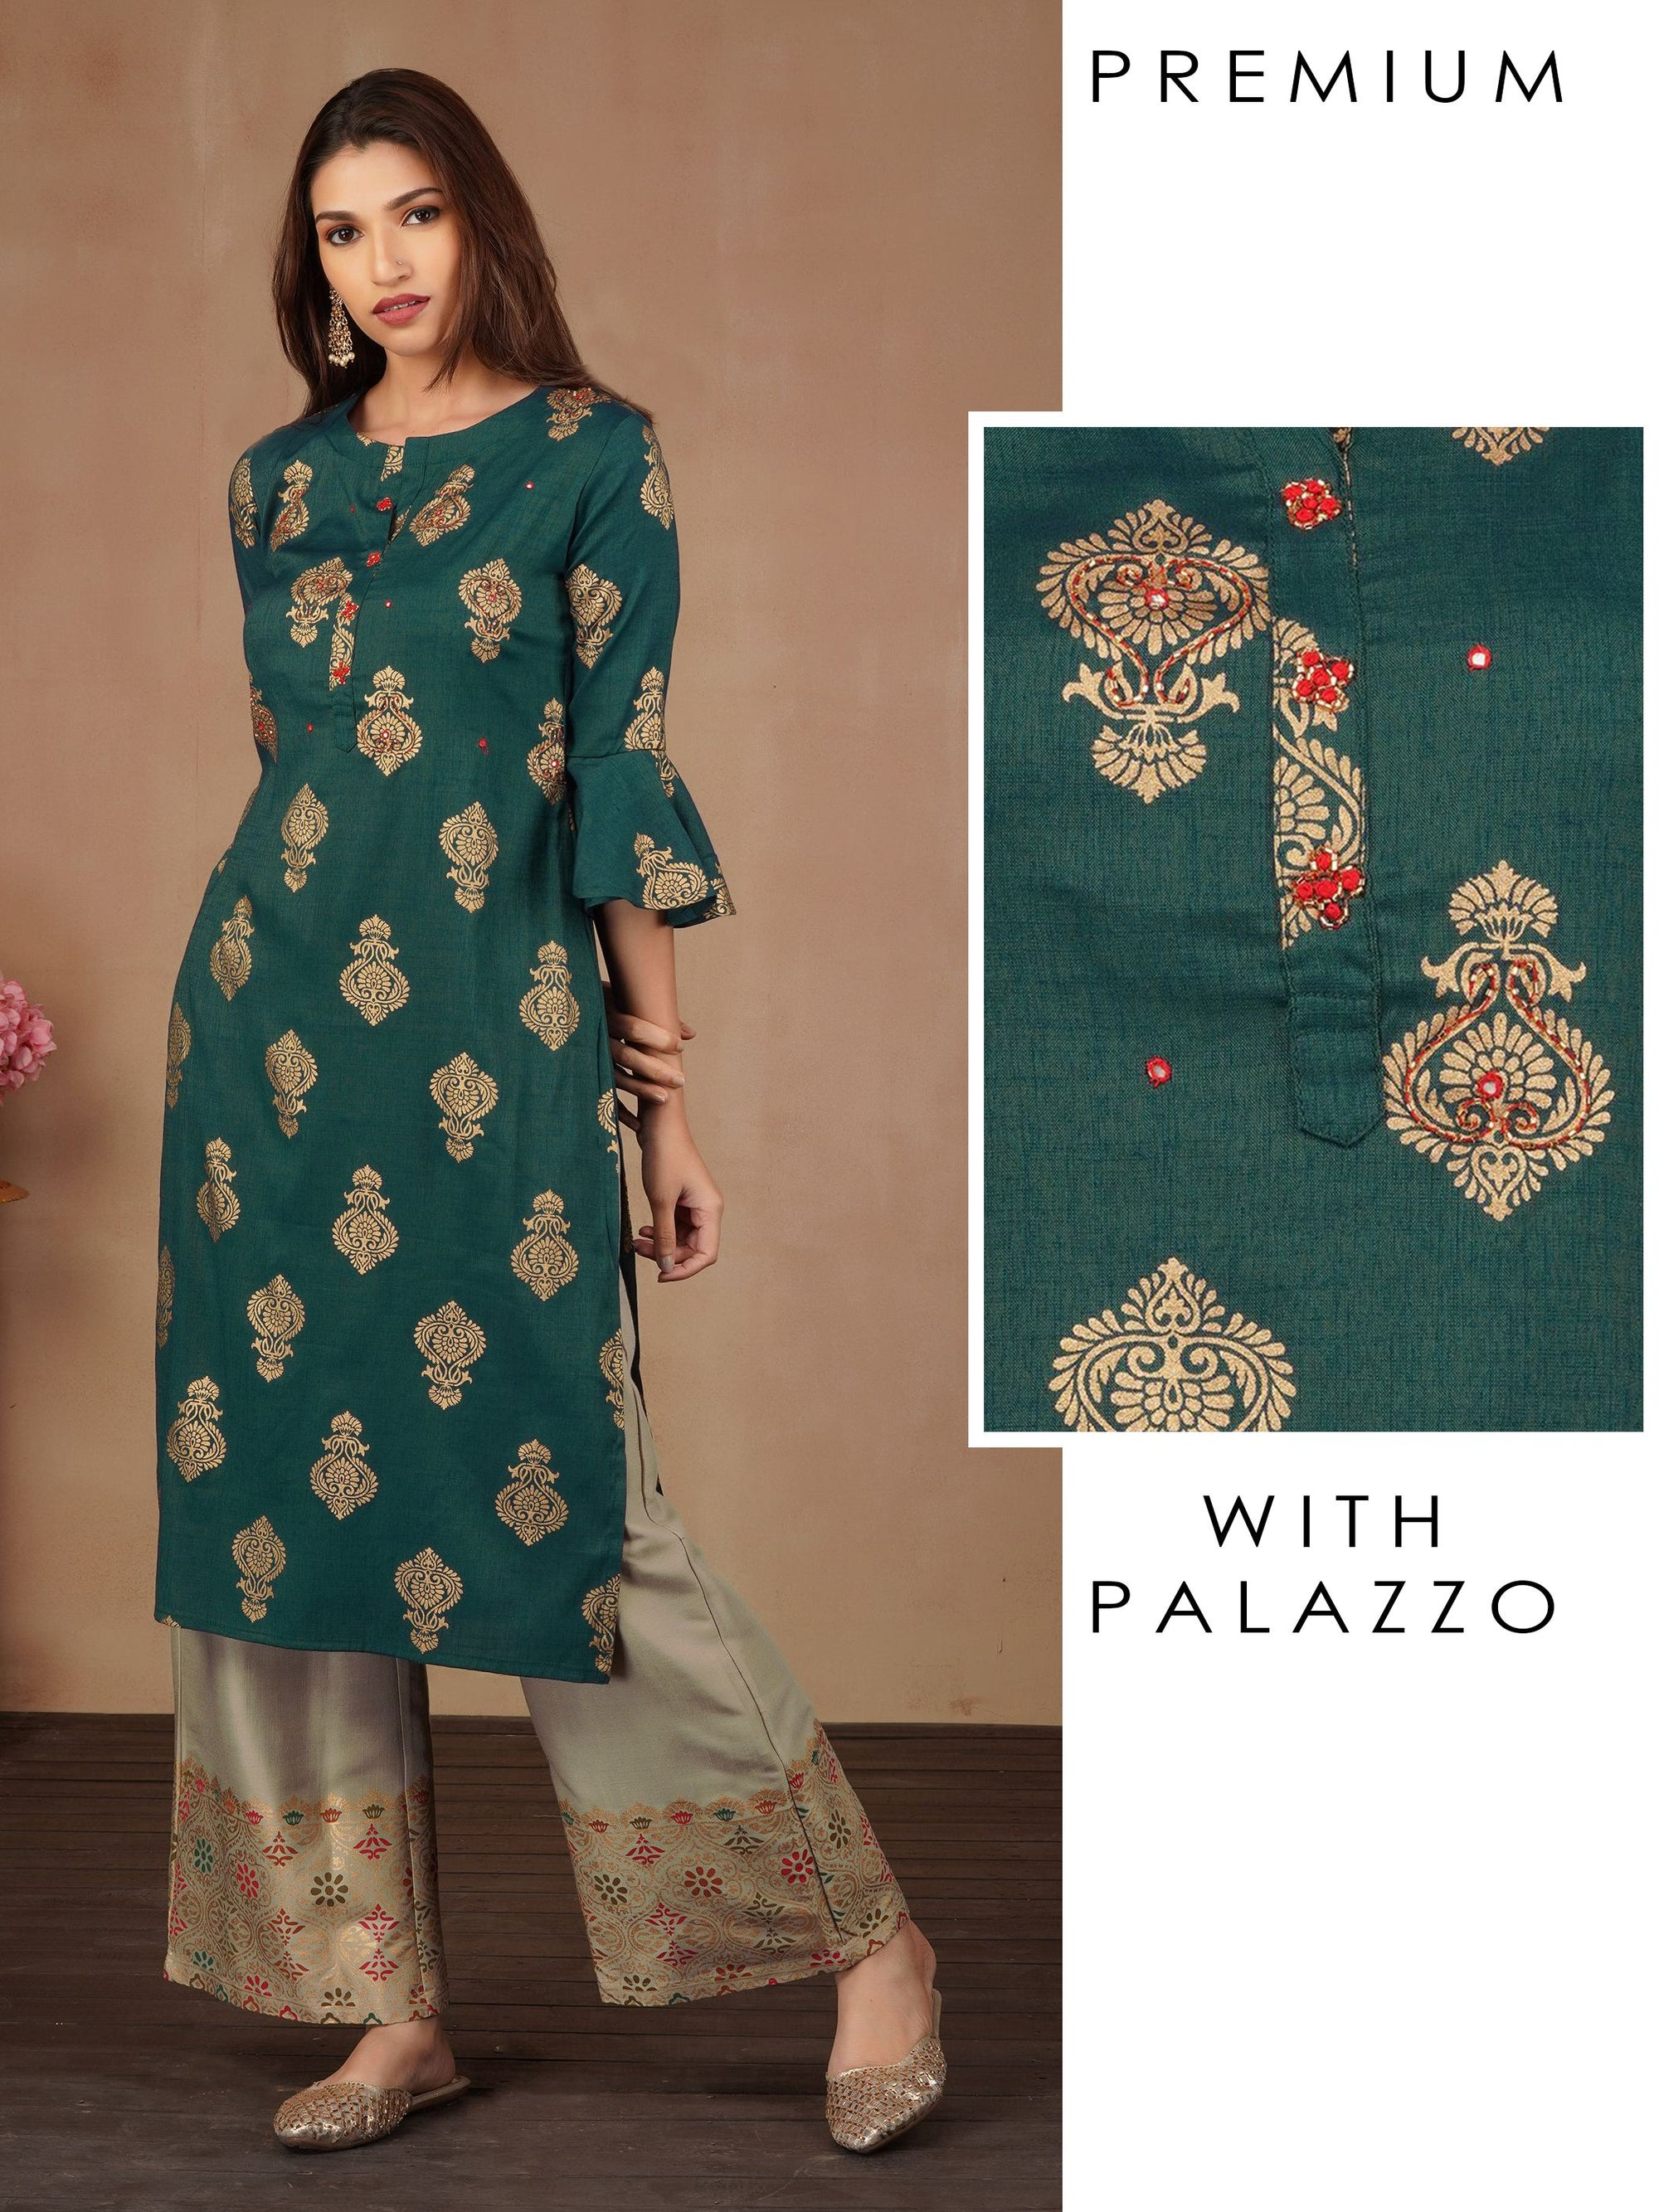 Khari Gold Print With Cutdana And Mirrorwork Kurta And Khari Printed Palazzo Set